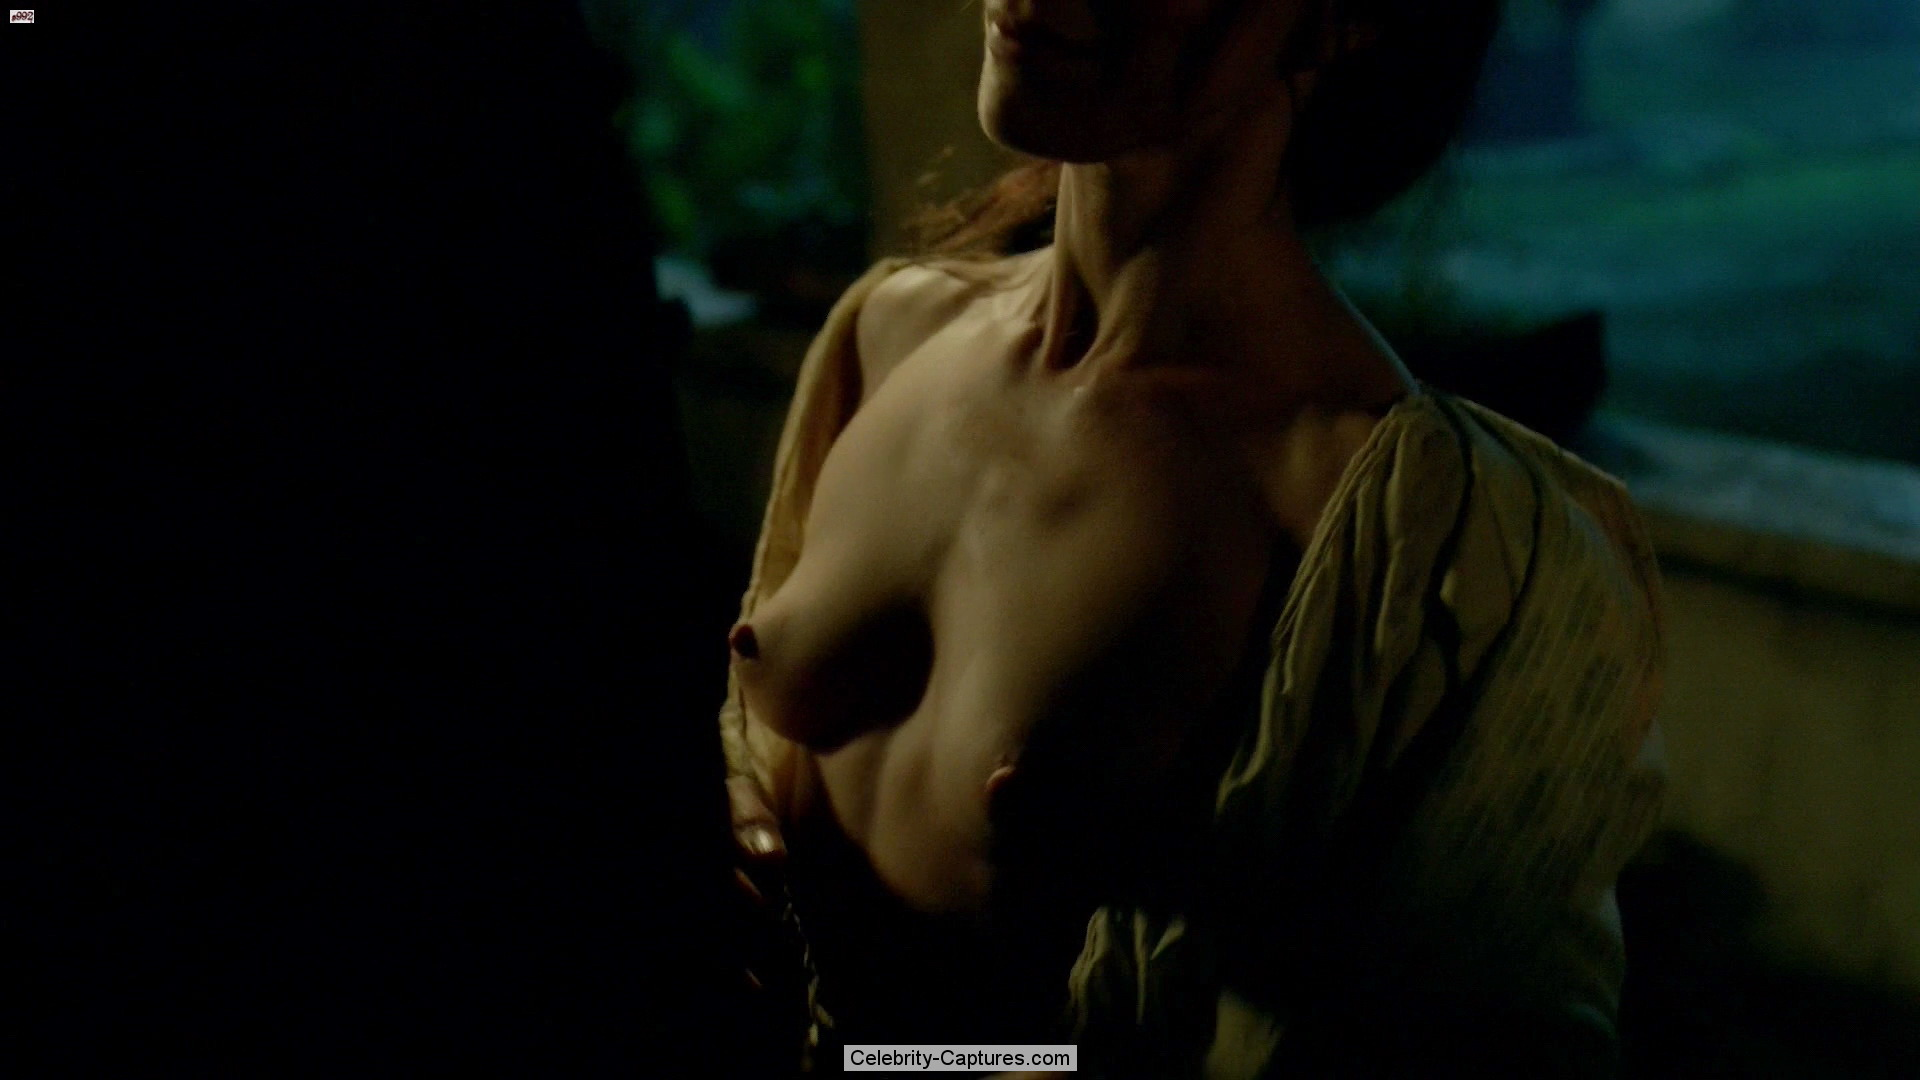 Actress in movie naked